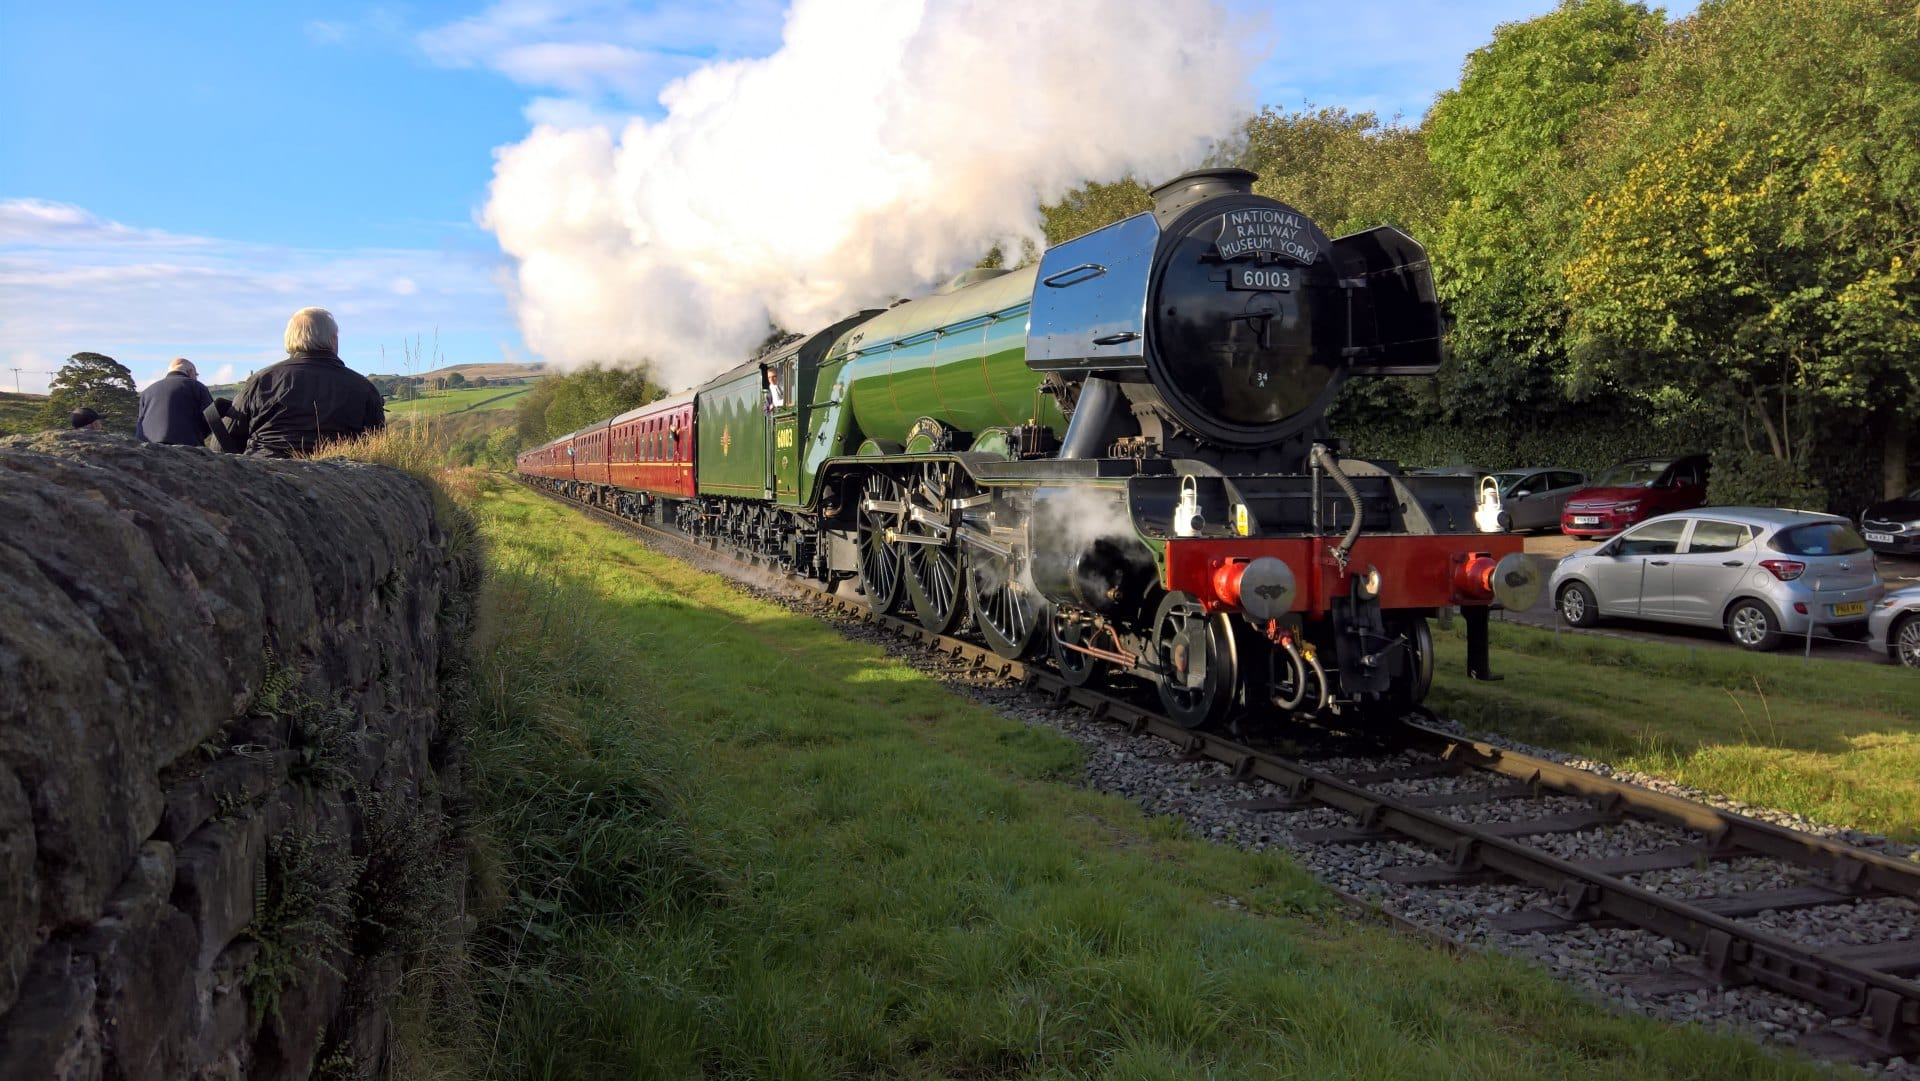 Flying Scotsman at Irwell Vale on the East Lancashire Railway